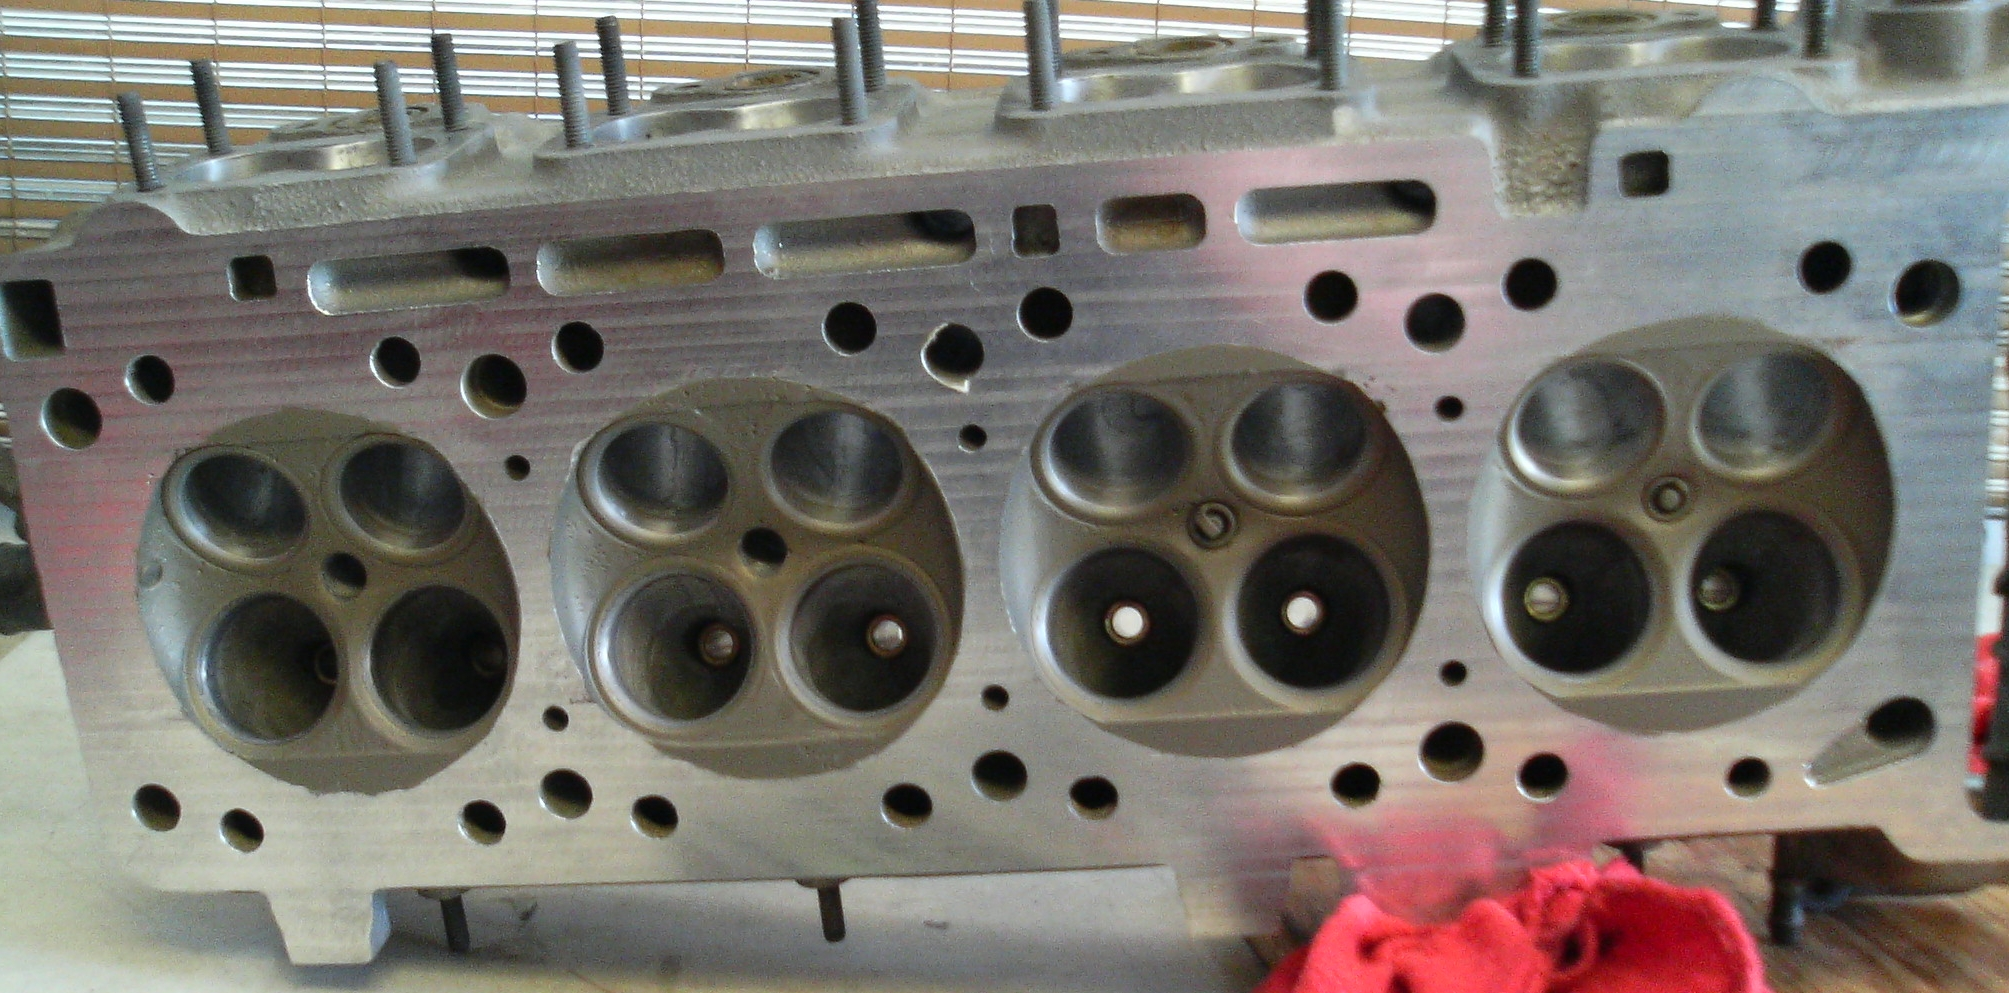 BMW M3 engine project thermal barrier coated